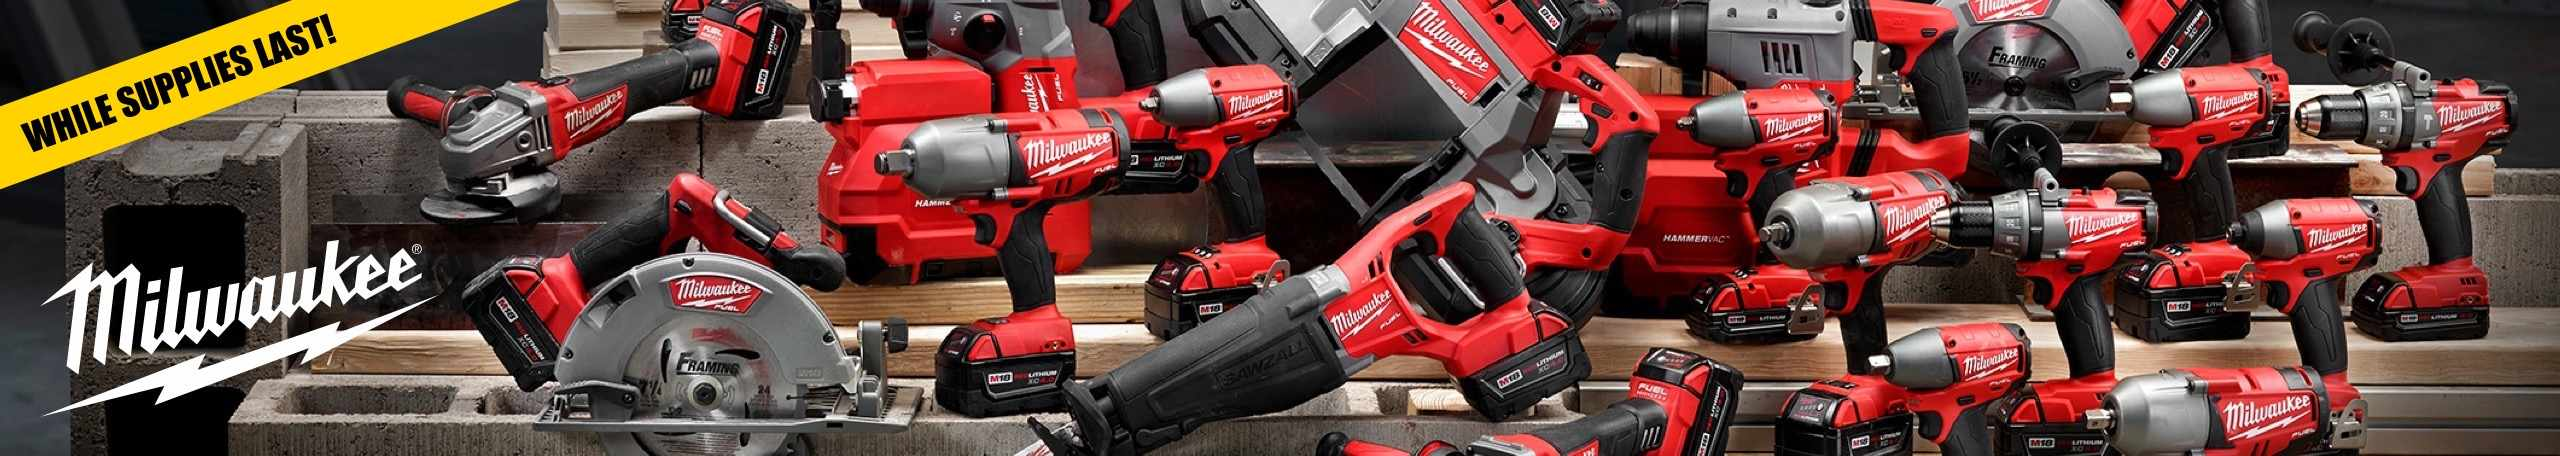 Shop Milwaukee power tools at Manchester Hardware